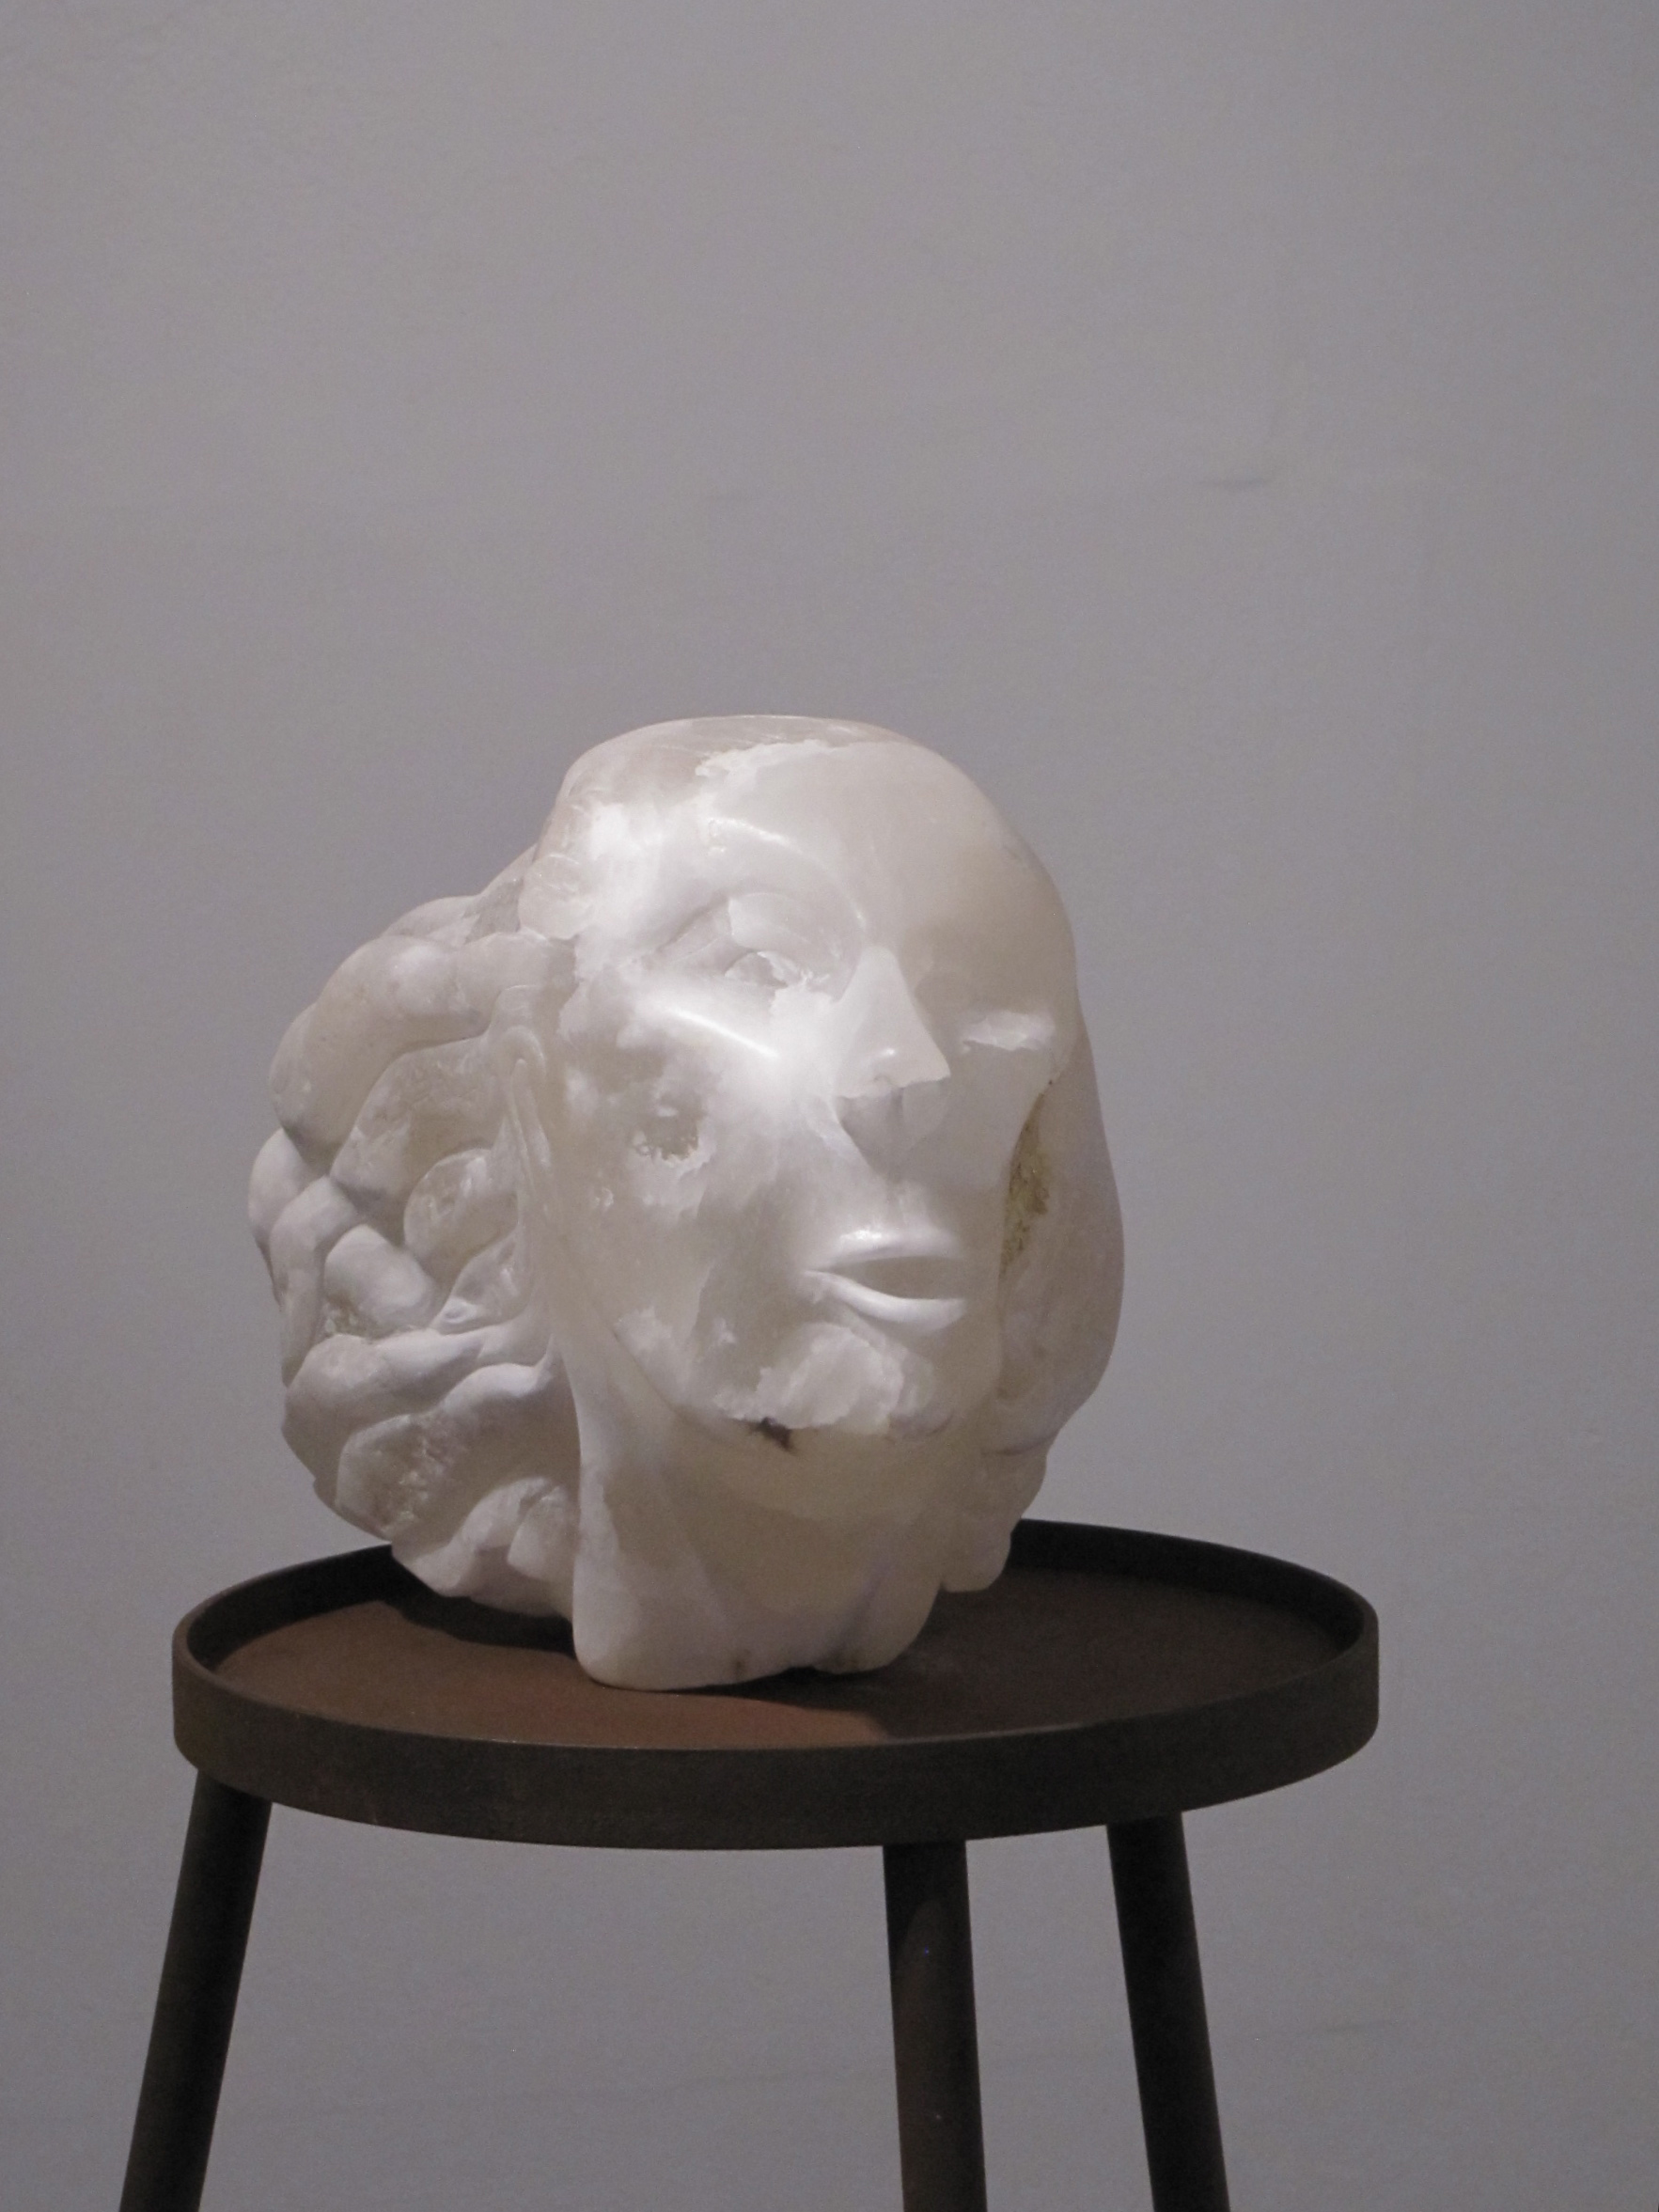 'Gasp'  2014  White Alabaster and Gold Leaf  25cm x 25cm x 38cm  Stand: steel, nylon and wood - 150xm x 60xm x 60cm  £2000*